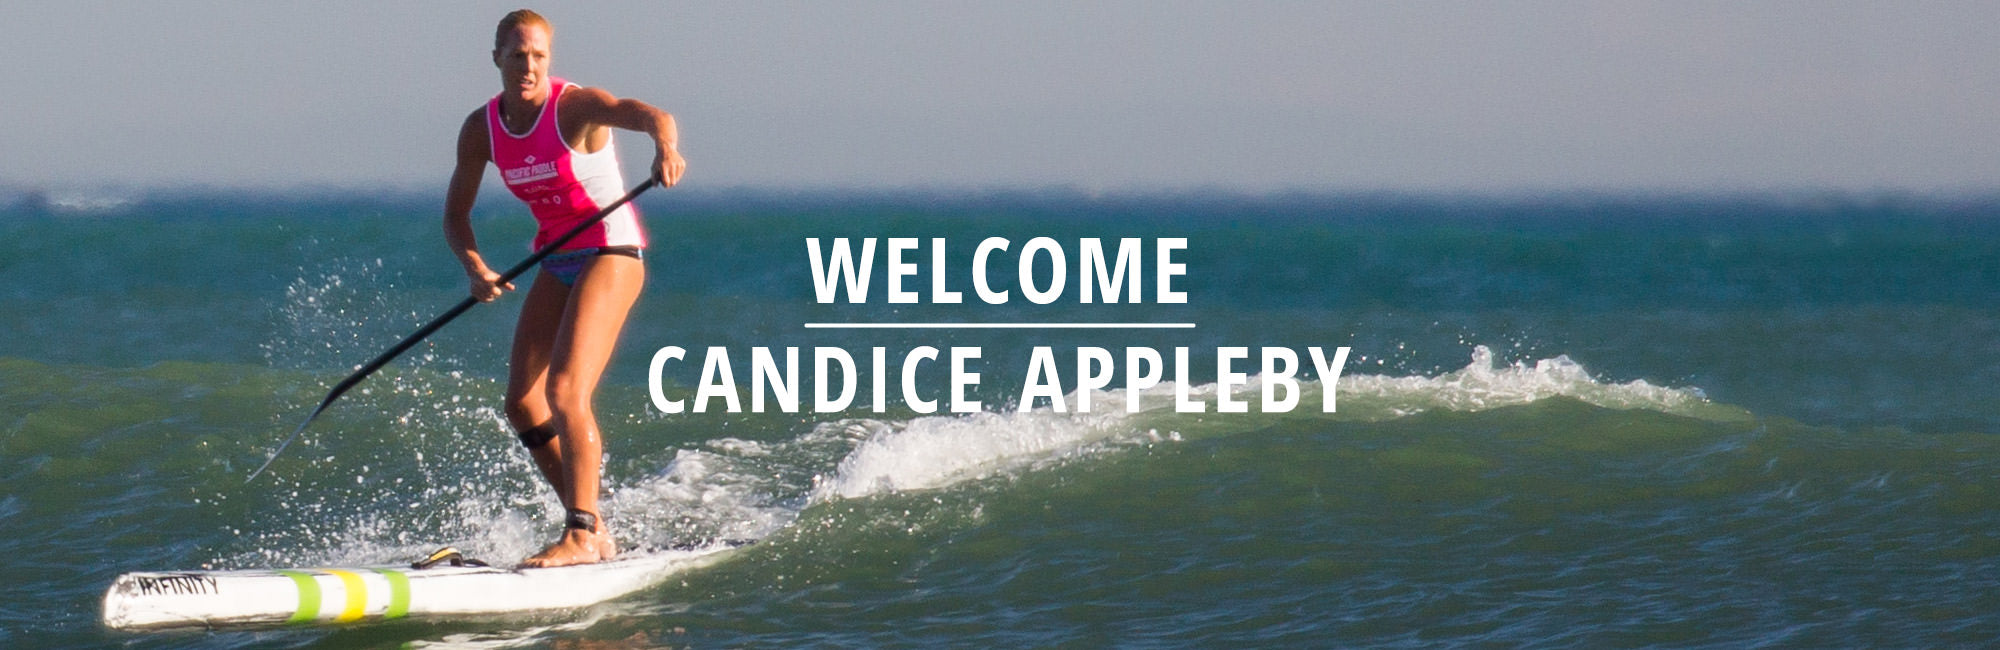 Welcome Candice Appleby